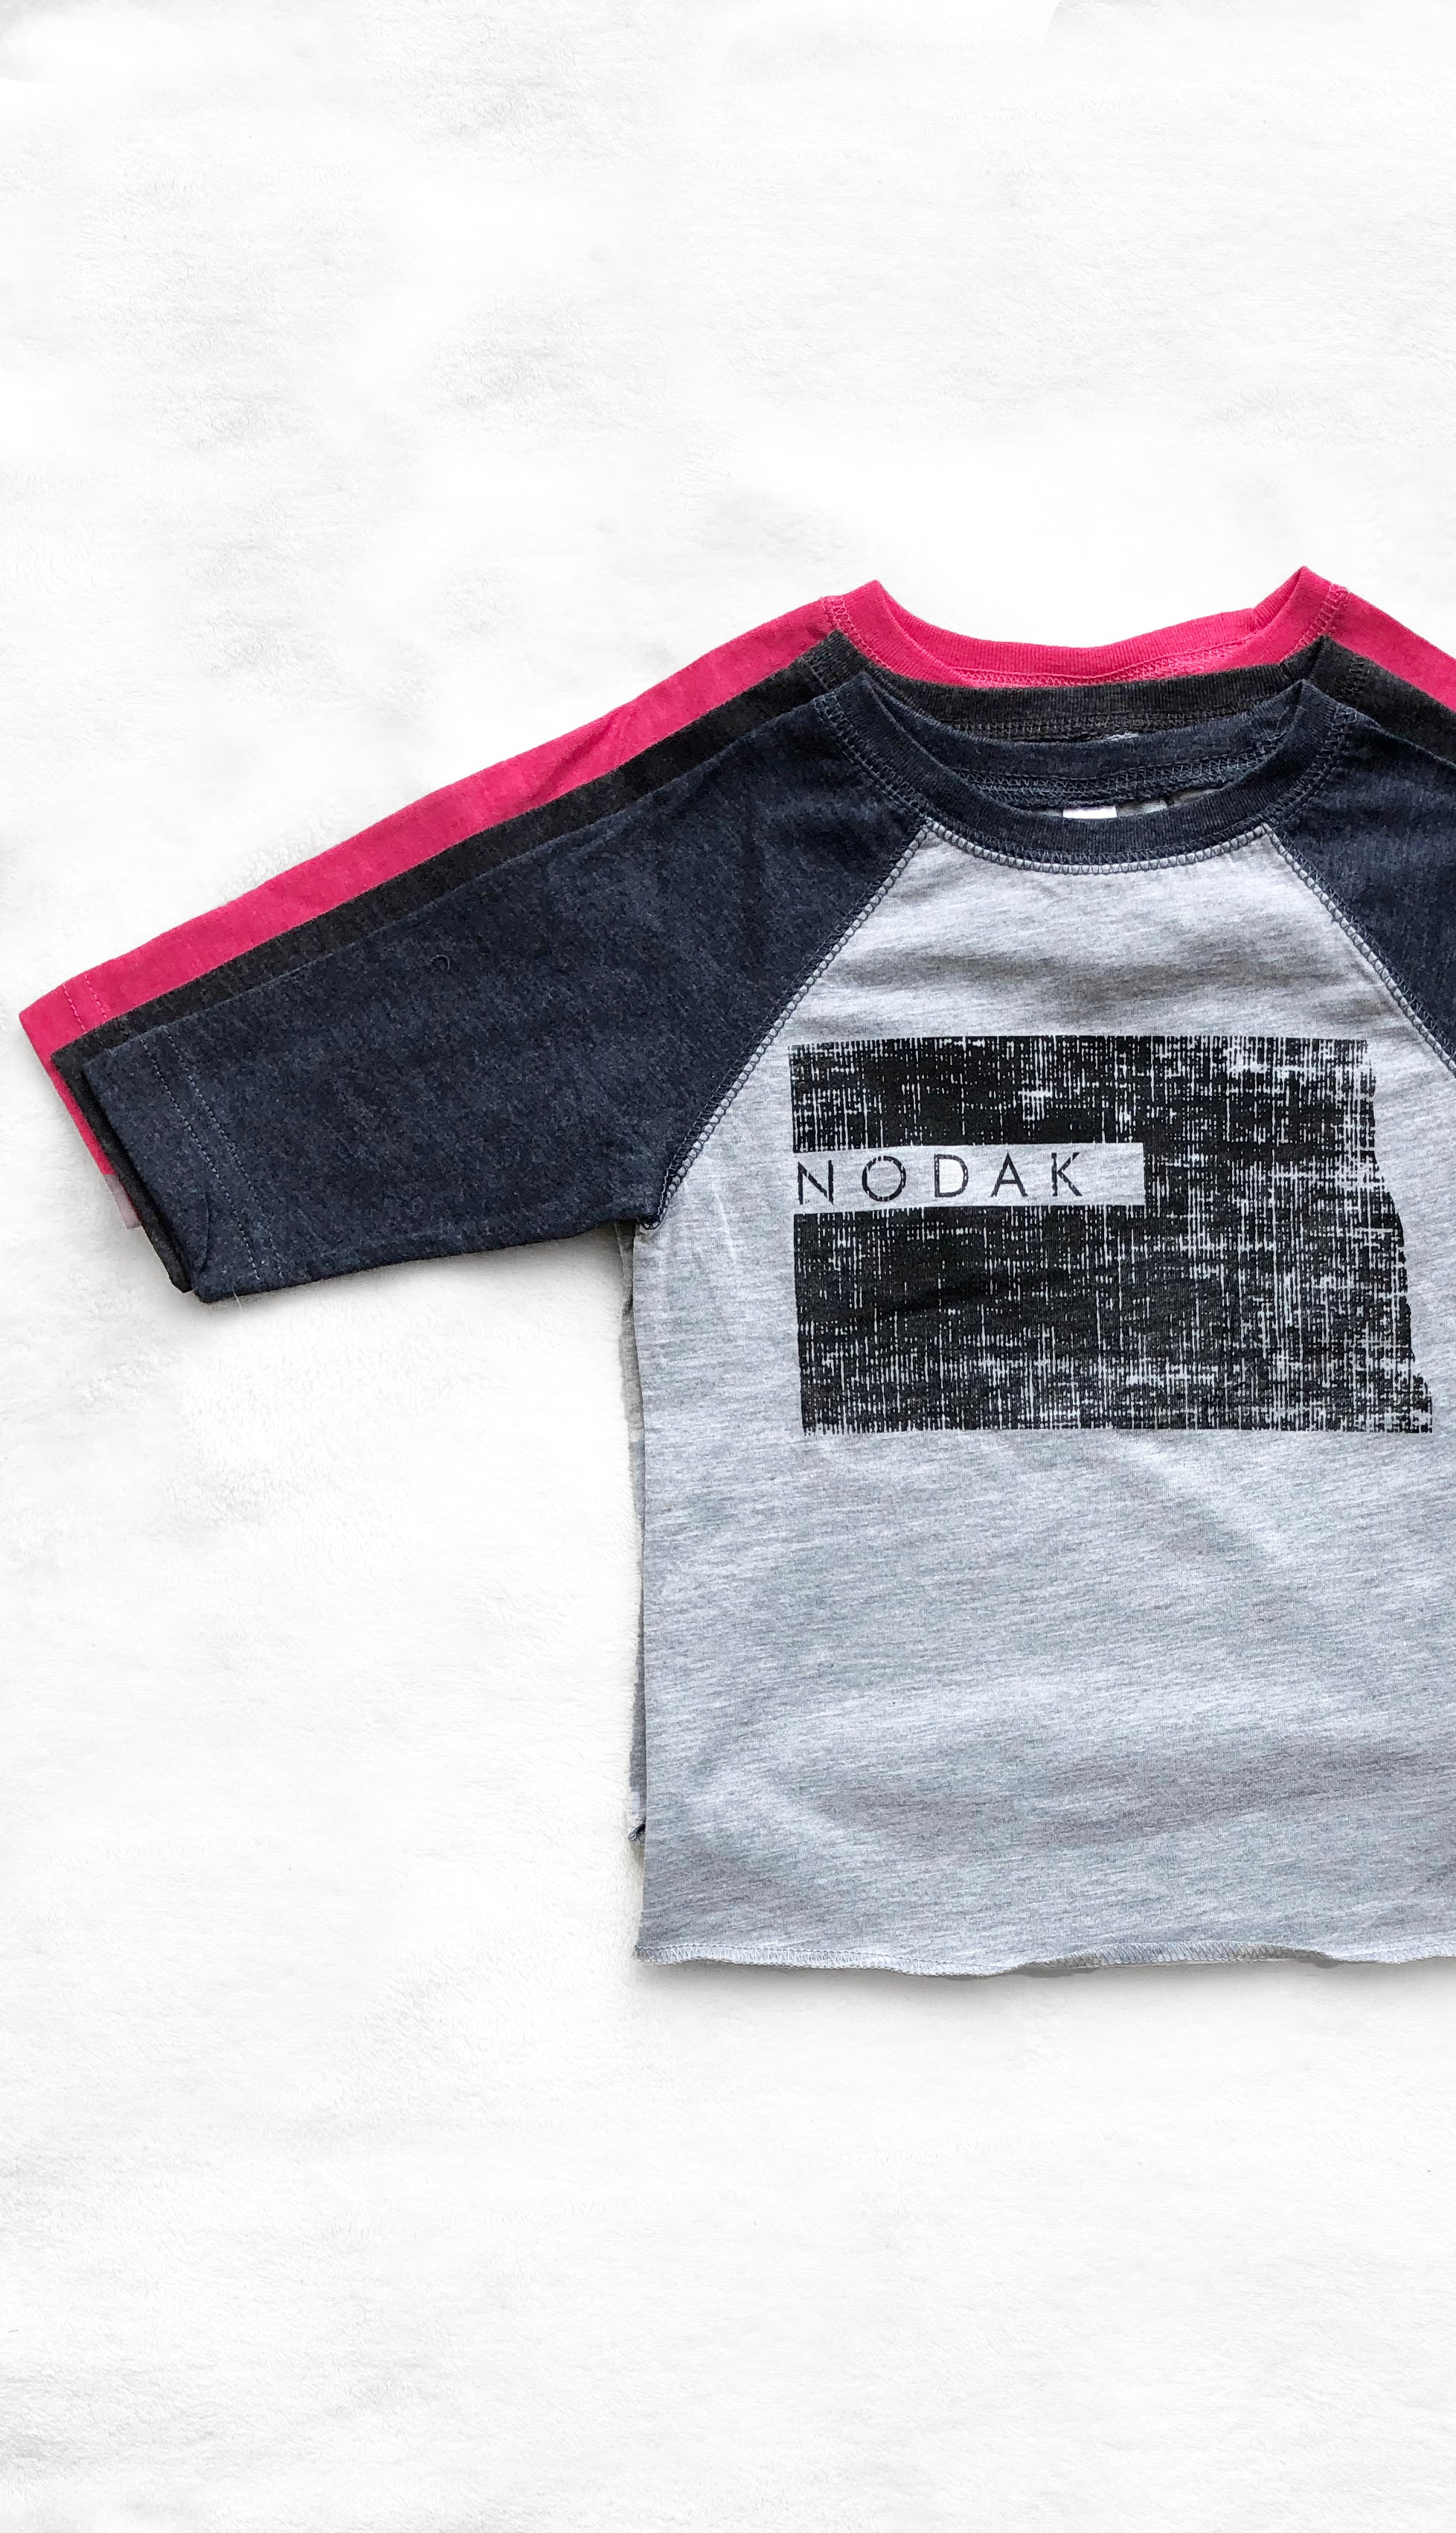 Kids Nodak Baseball Tee- Navy